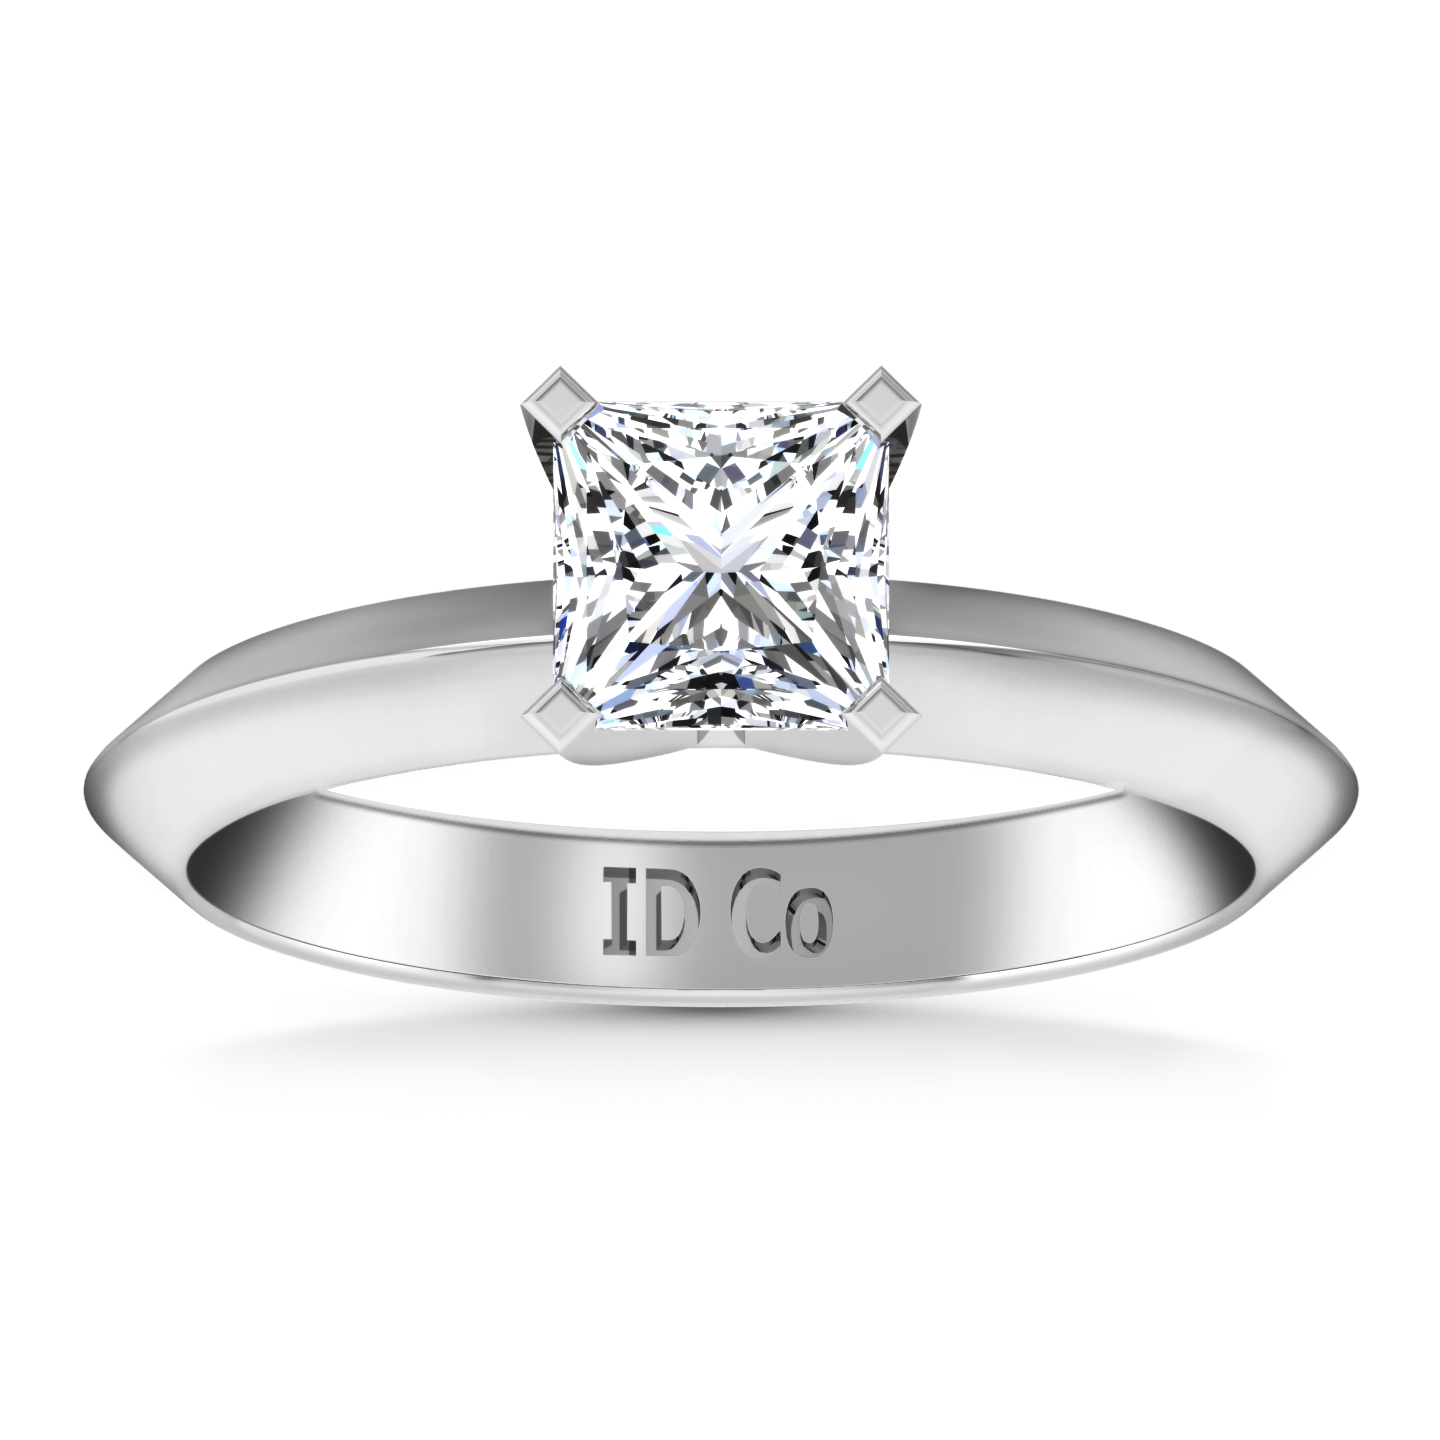 Solitaire Engagement Ring Knife Edge Princess Cut Diamond 14K